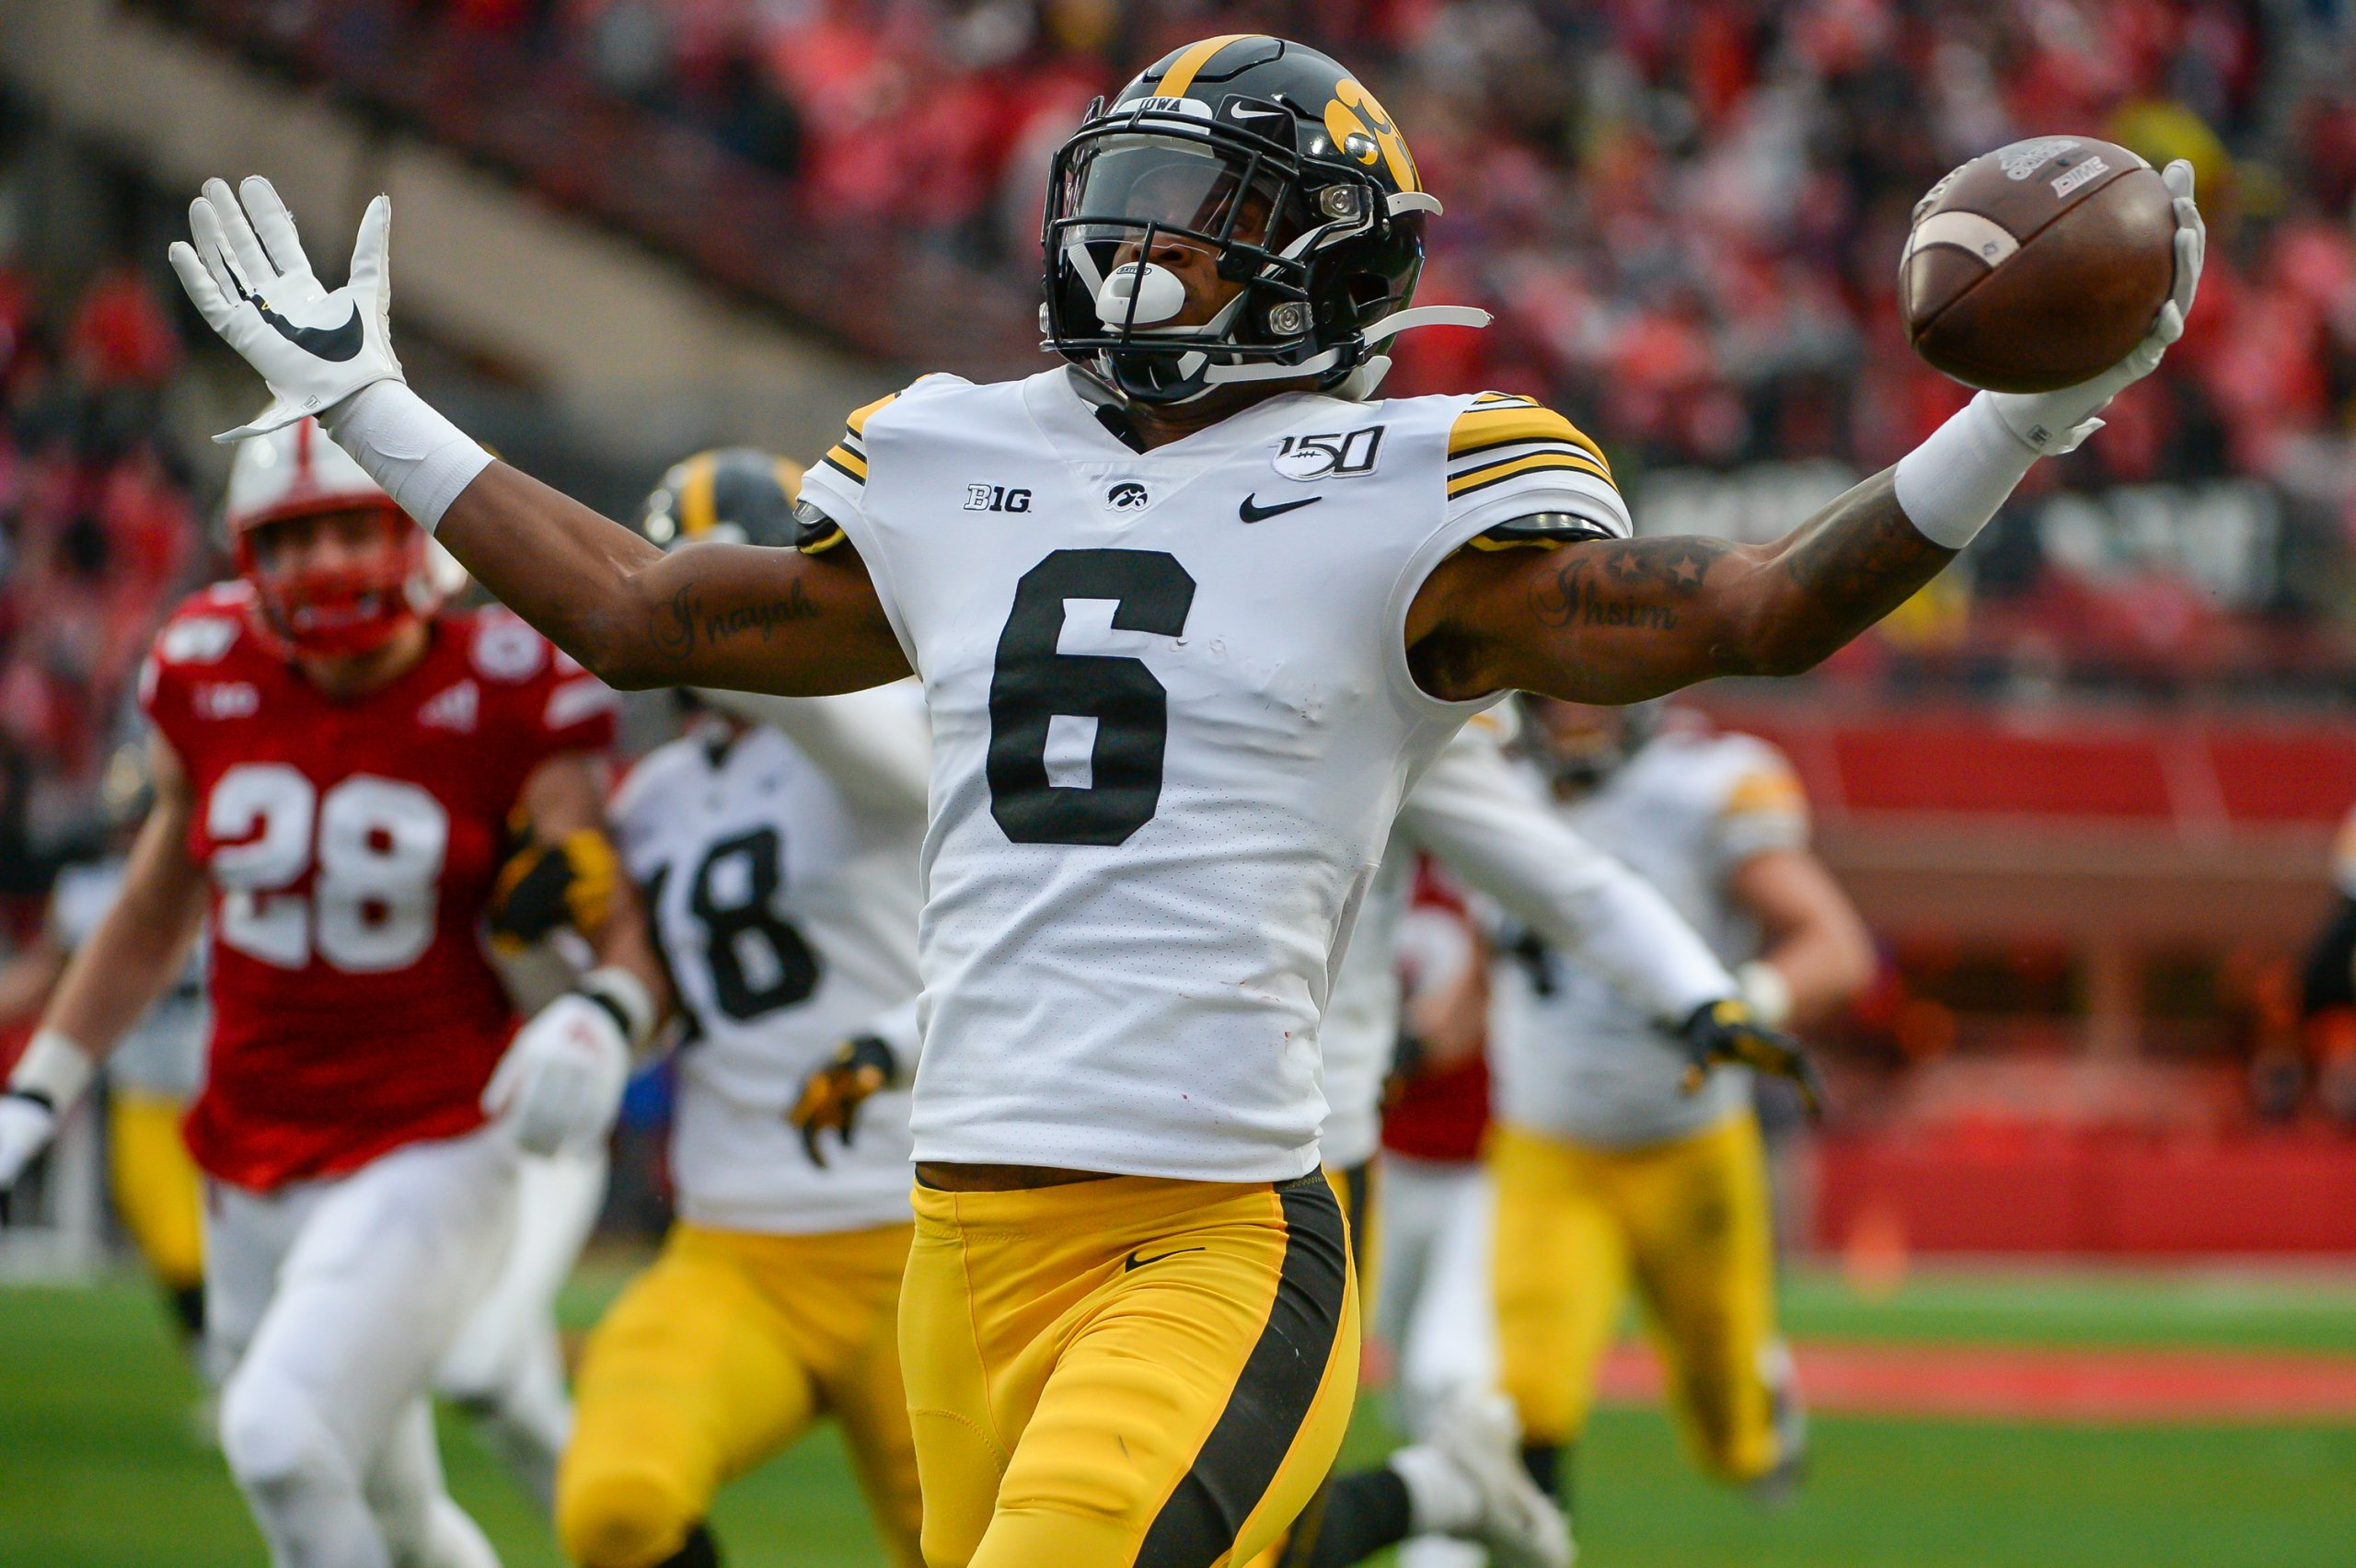 Big Ten football, pandemic and politics collide during congressional testimony